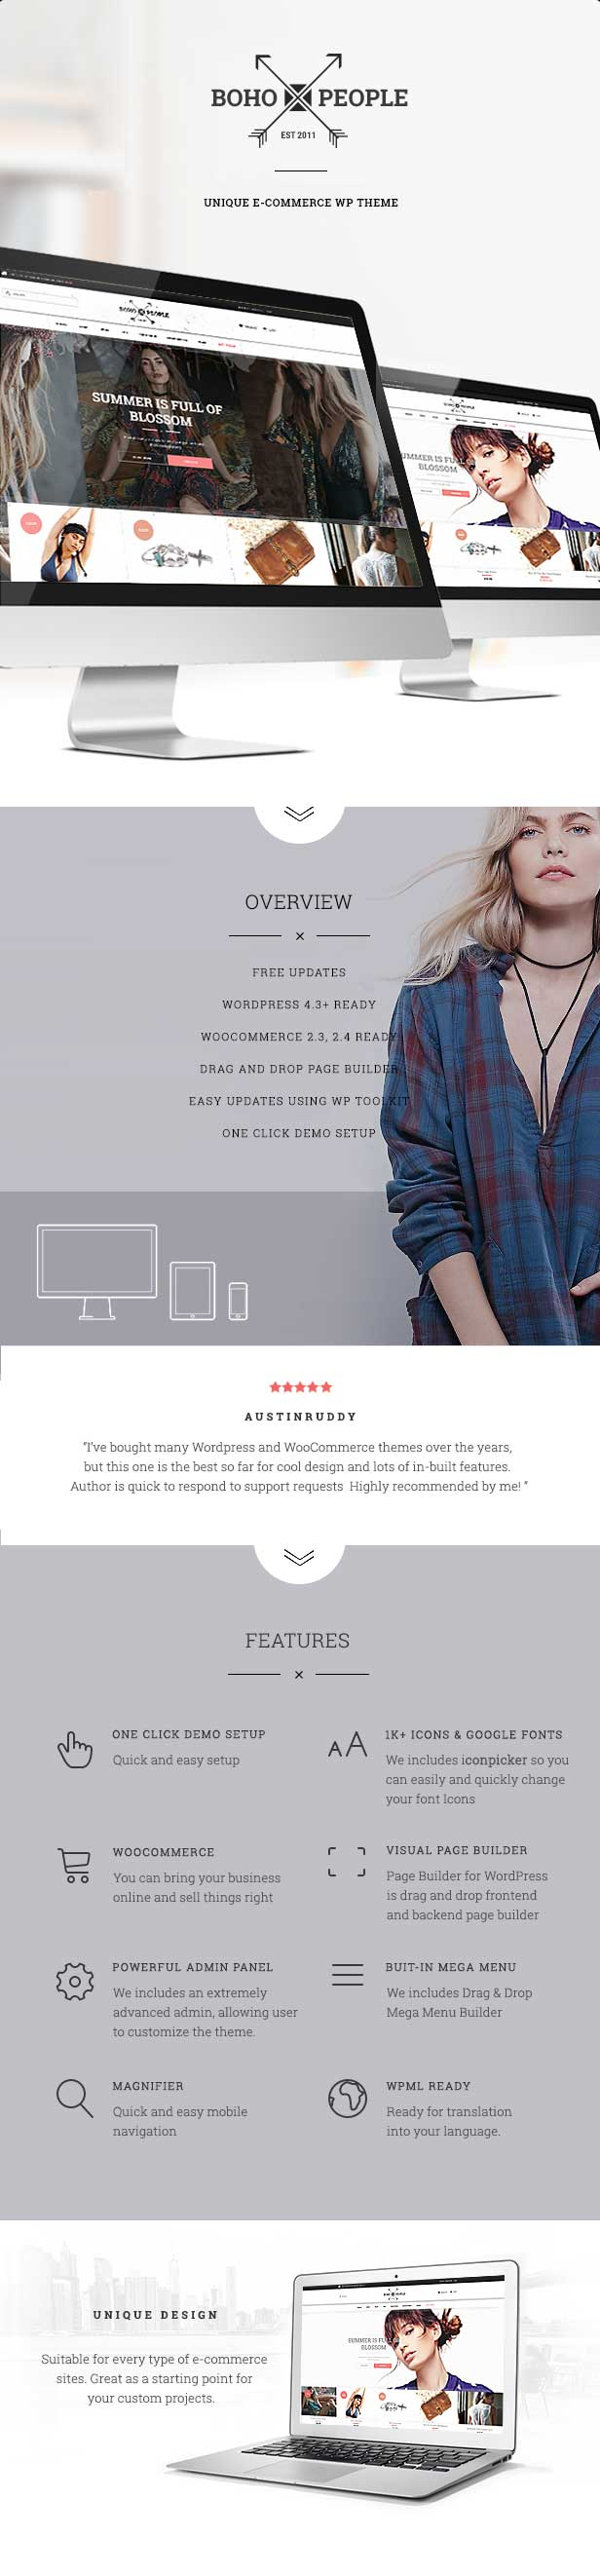 Bohopeople – Unique E-commerce WP Theme Features